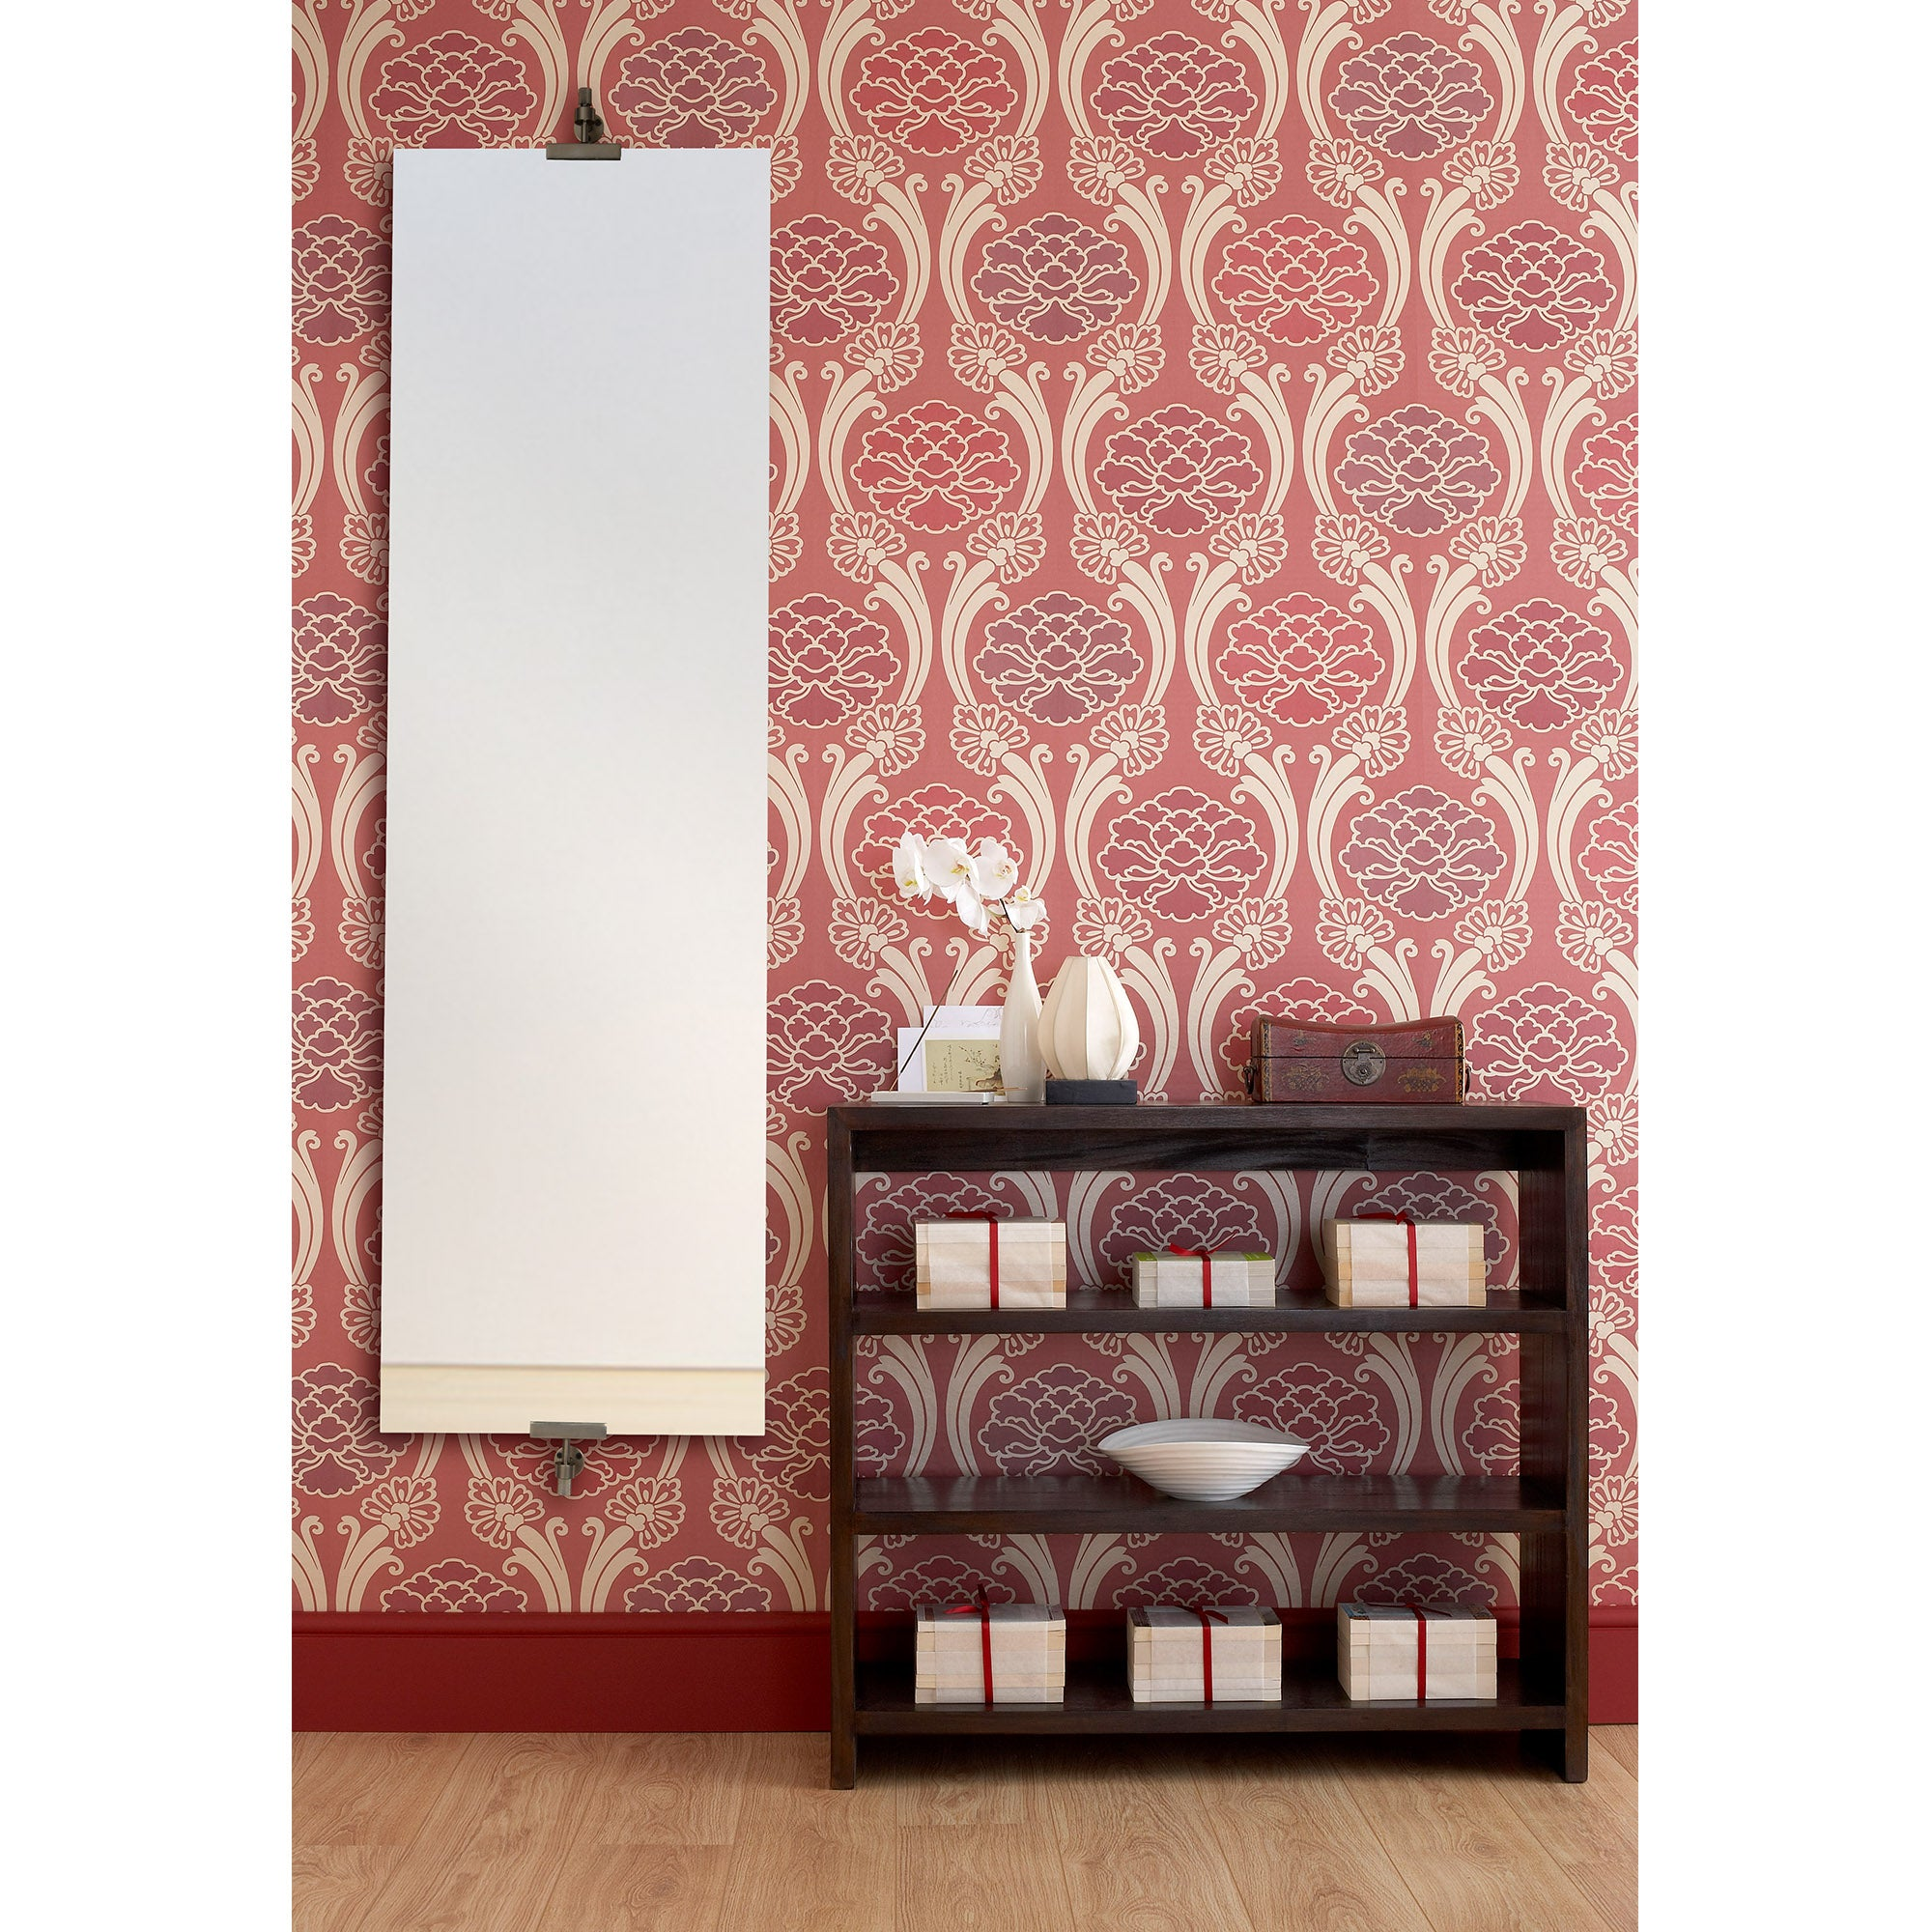 Ashlar Full Length Wall Mirror - All Glass - Polished Edges - Antique Bronze Clips